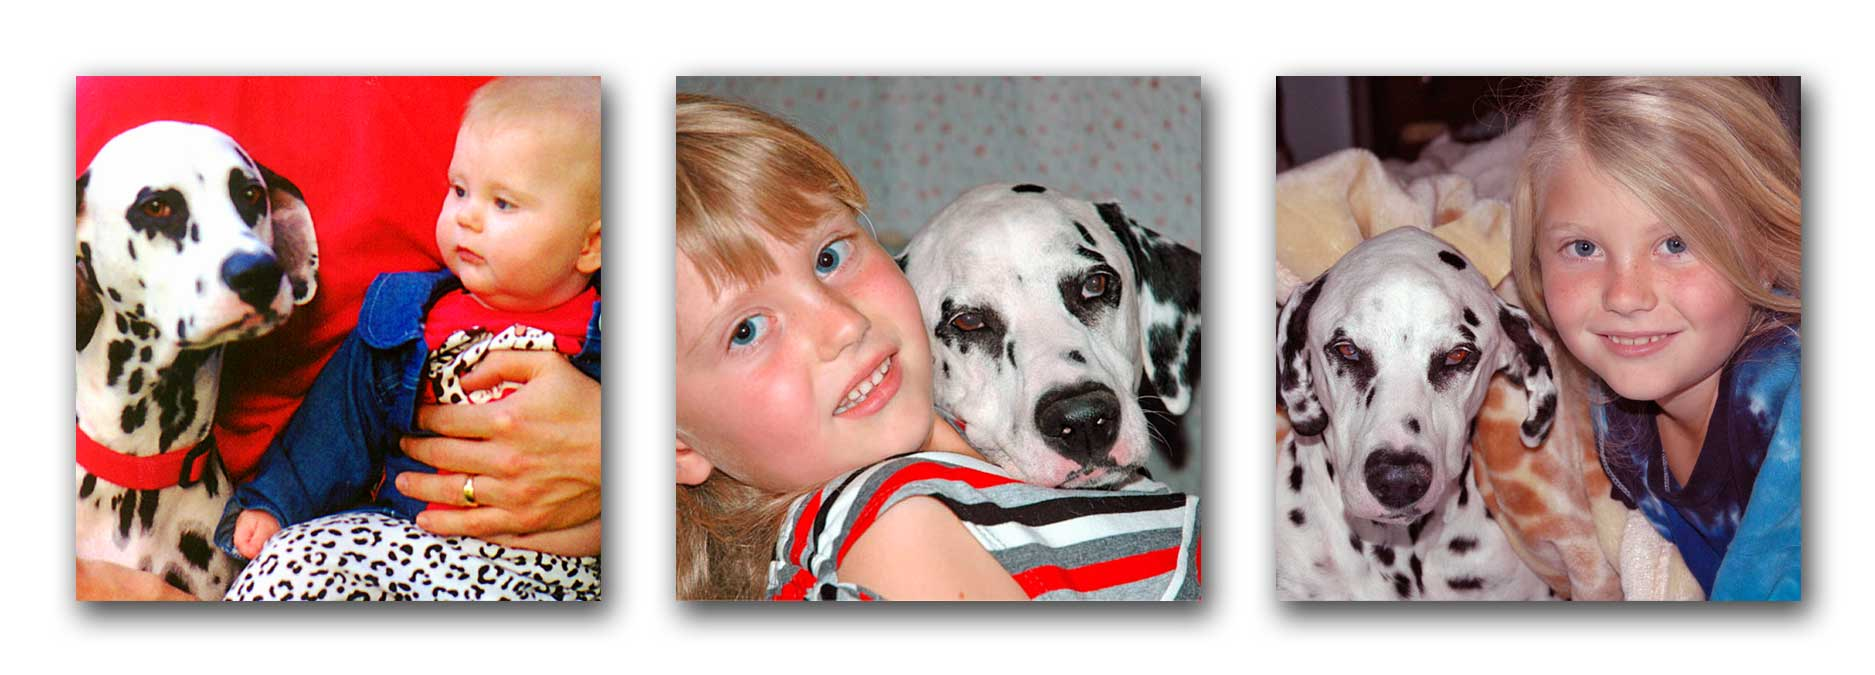 Molly growing up with our daughter. Molly is ages 4, 10, and 13.